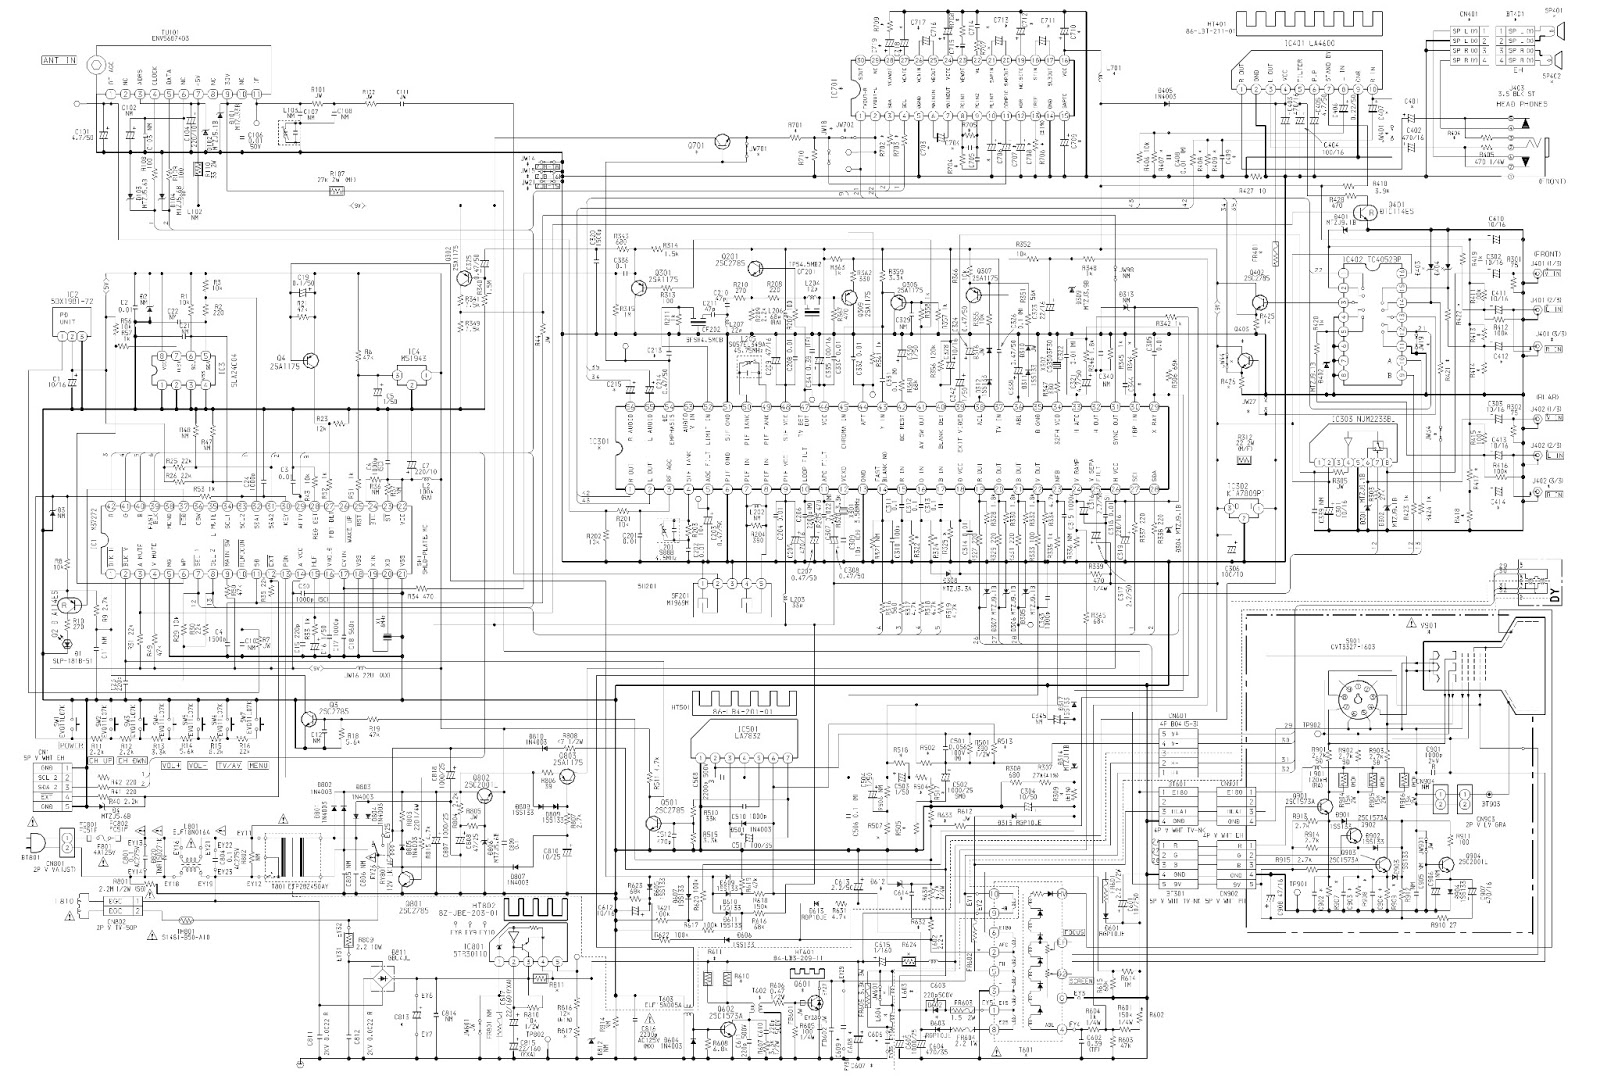 untitled.bmp aiwa tv c1300 tv cn140 schematic diagram [circuit diagram aiwa cdc-x144 wiring diagram at aneh.co